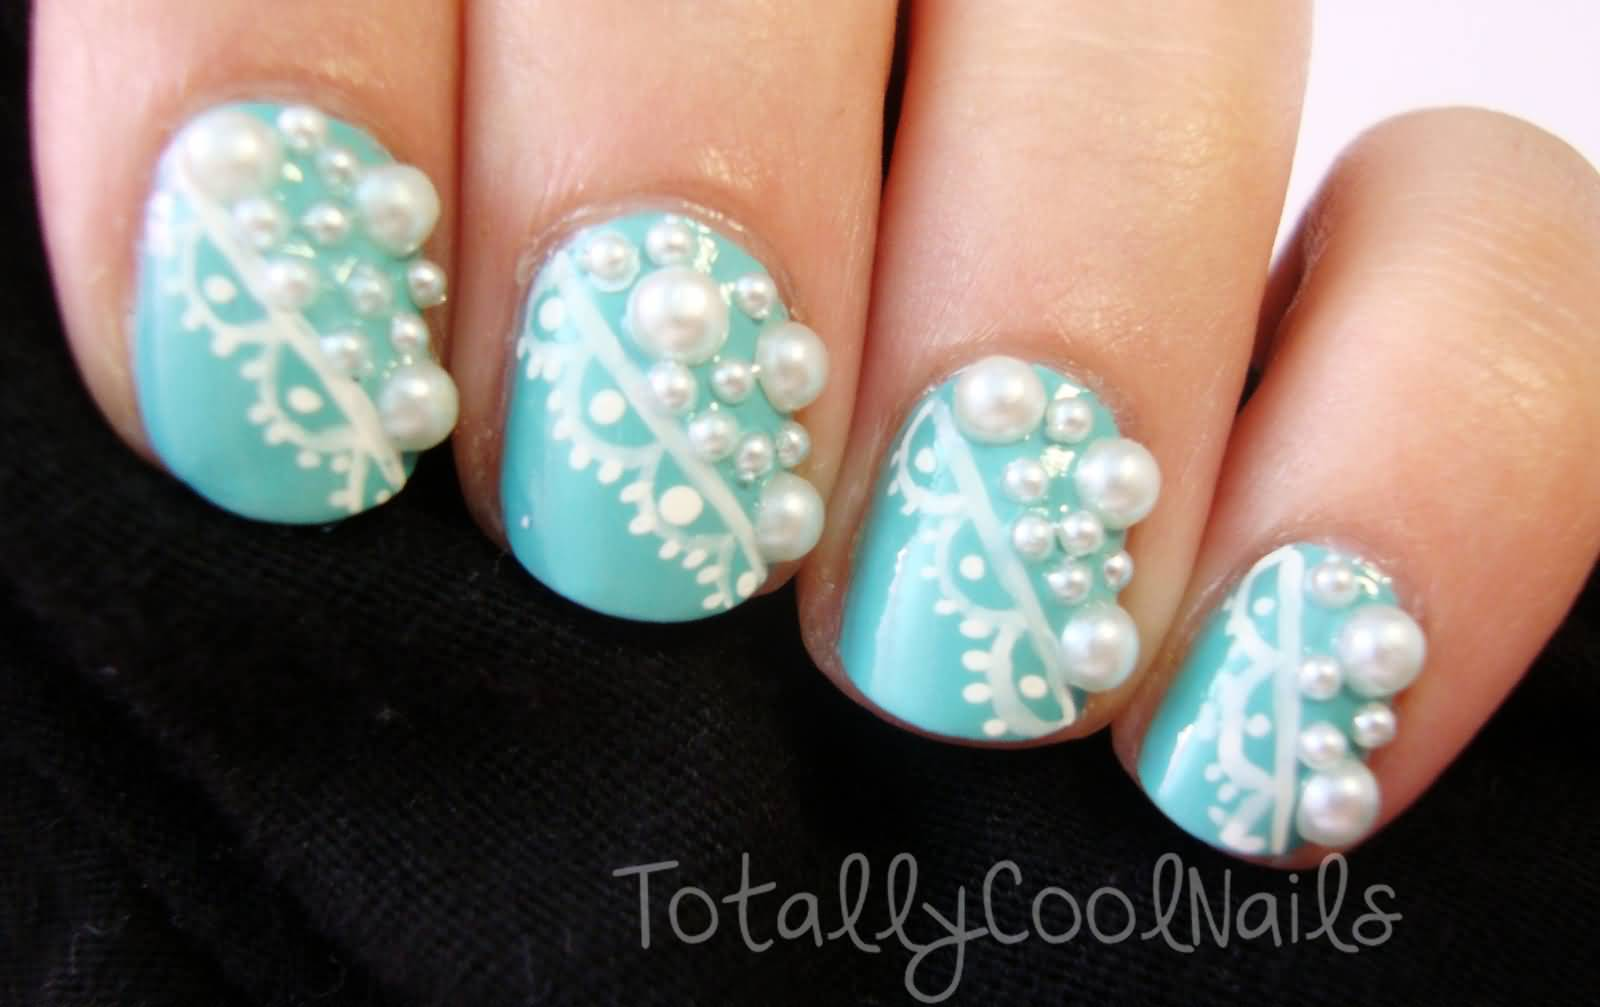 Blue Nails With White Lace And Pearls Design Nail Art With Tutorial ...